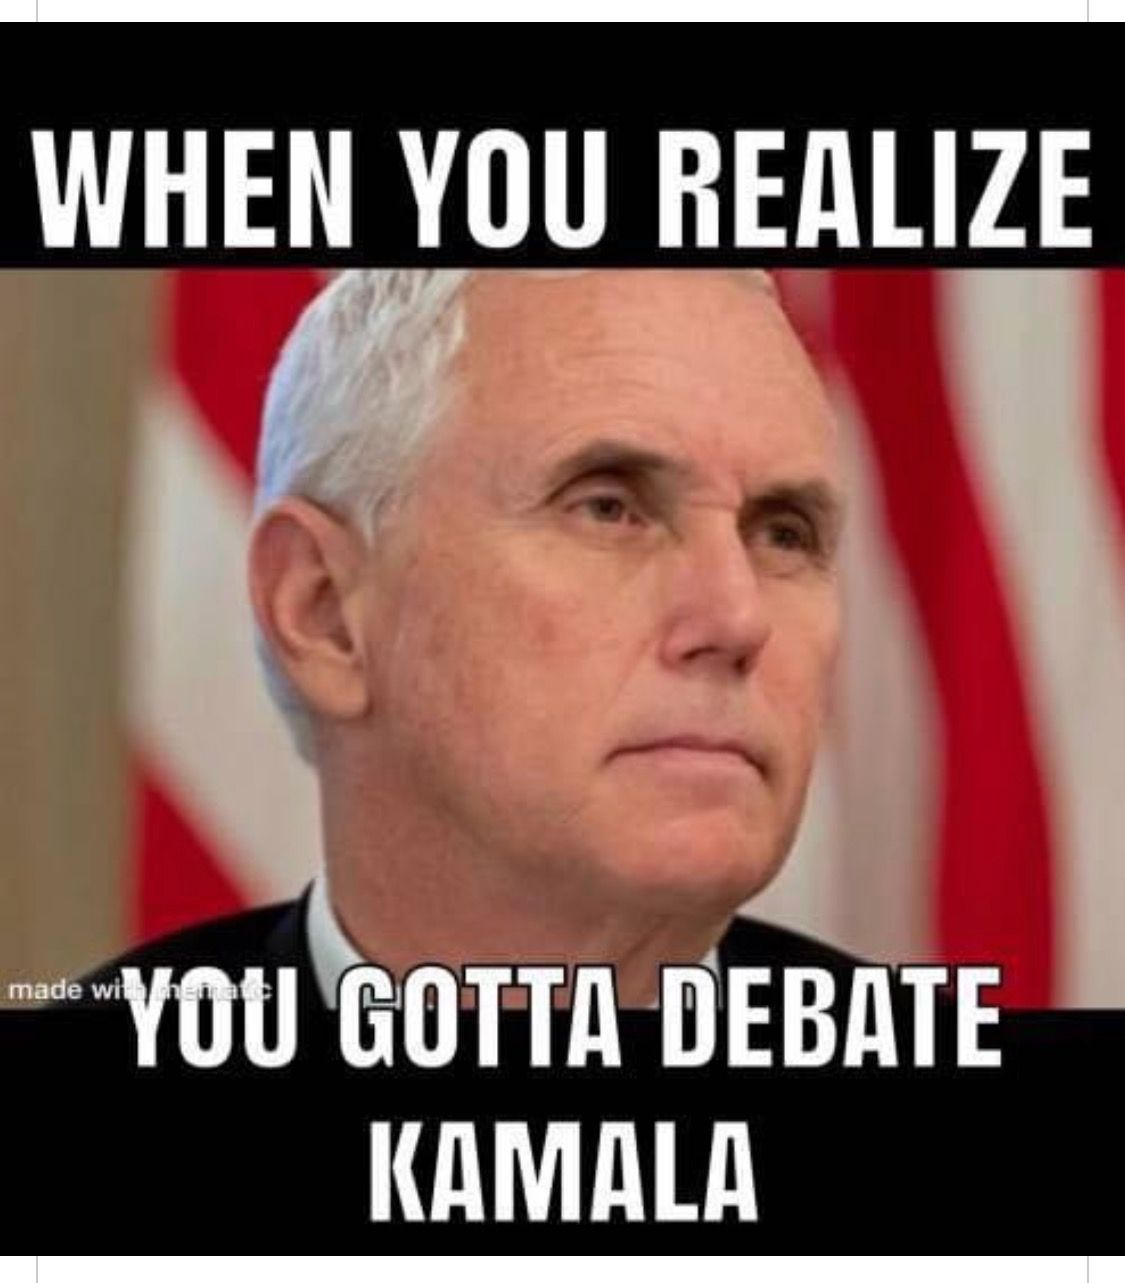 Pin By Mm On Good Stuff To Know Debate Memes When You Realize Going To Work